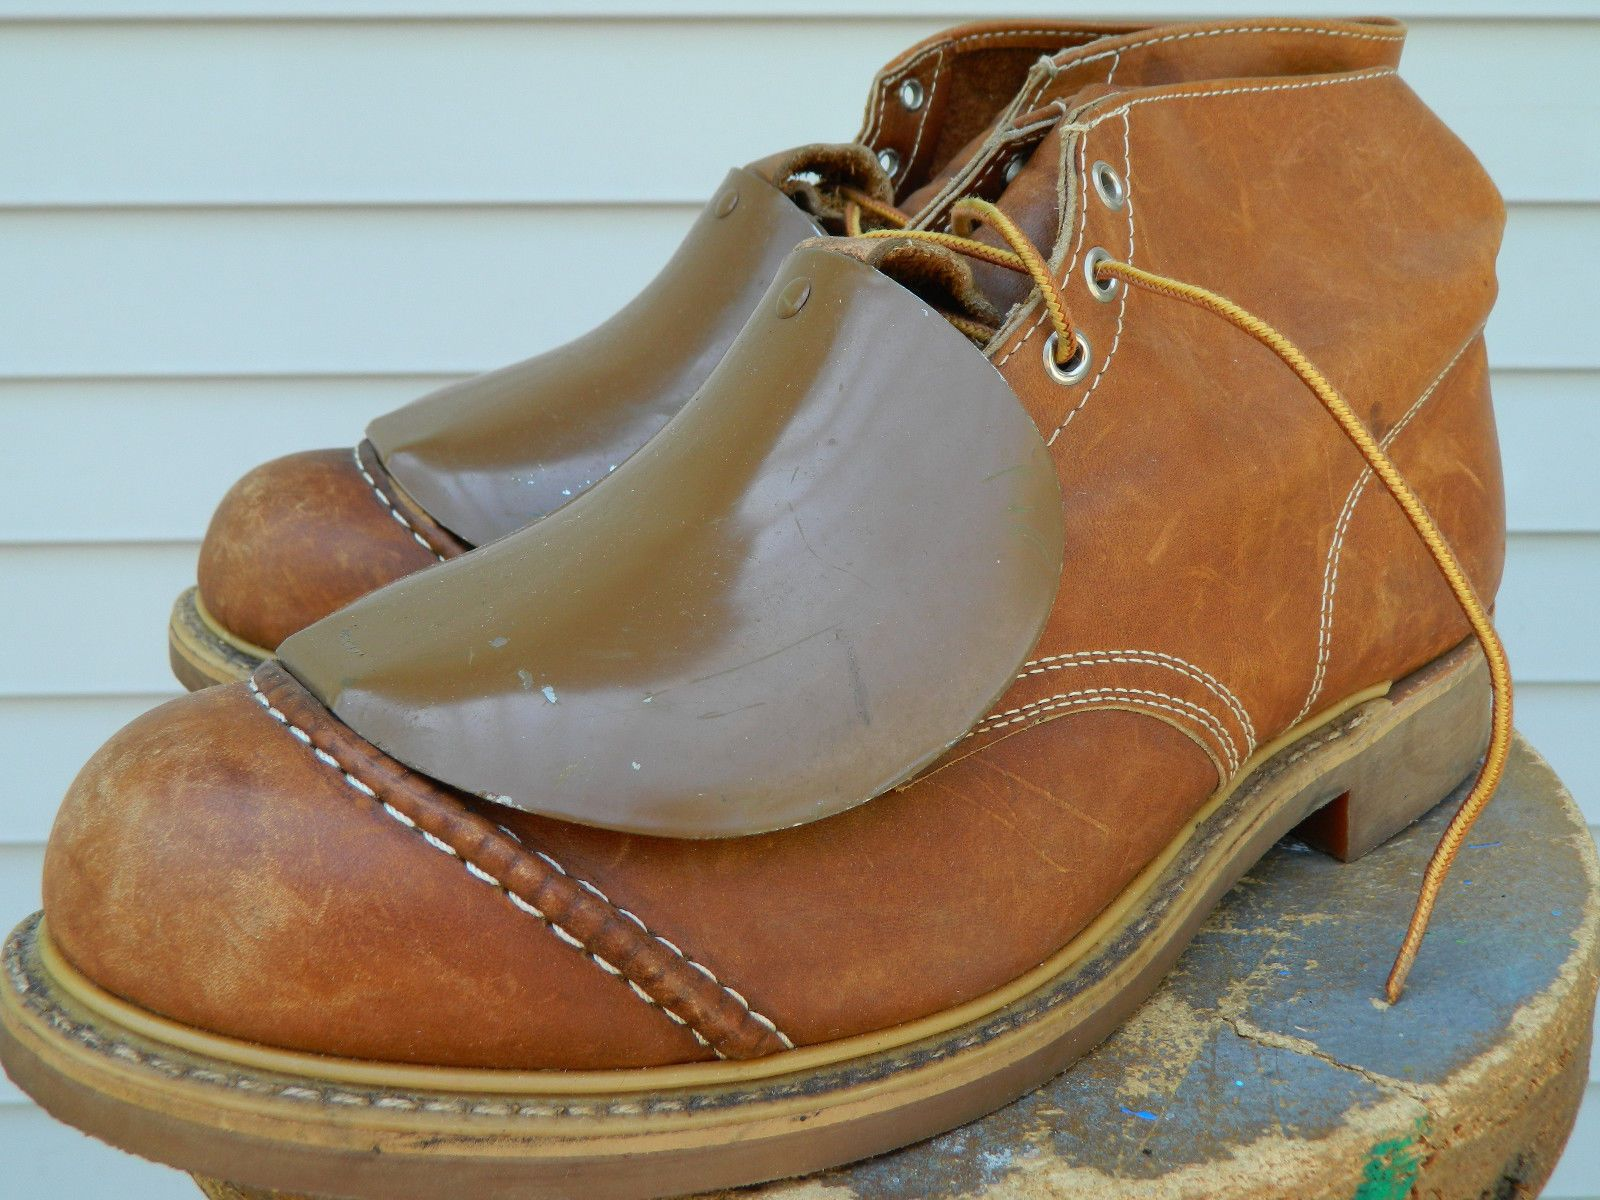 1980's LEHIGH Safety Shoes with Metatarsal Guard. US Men's